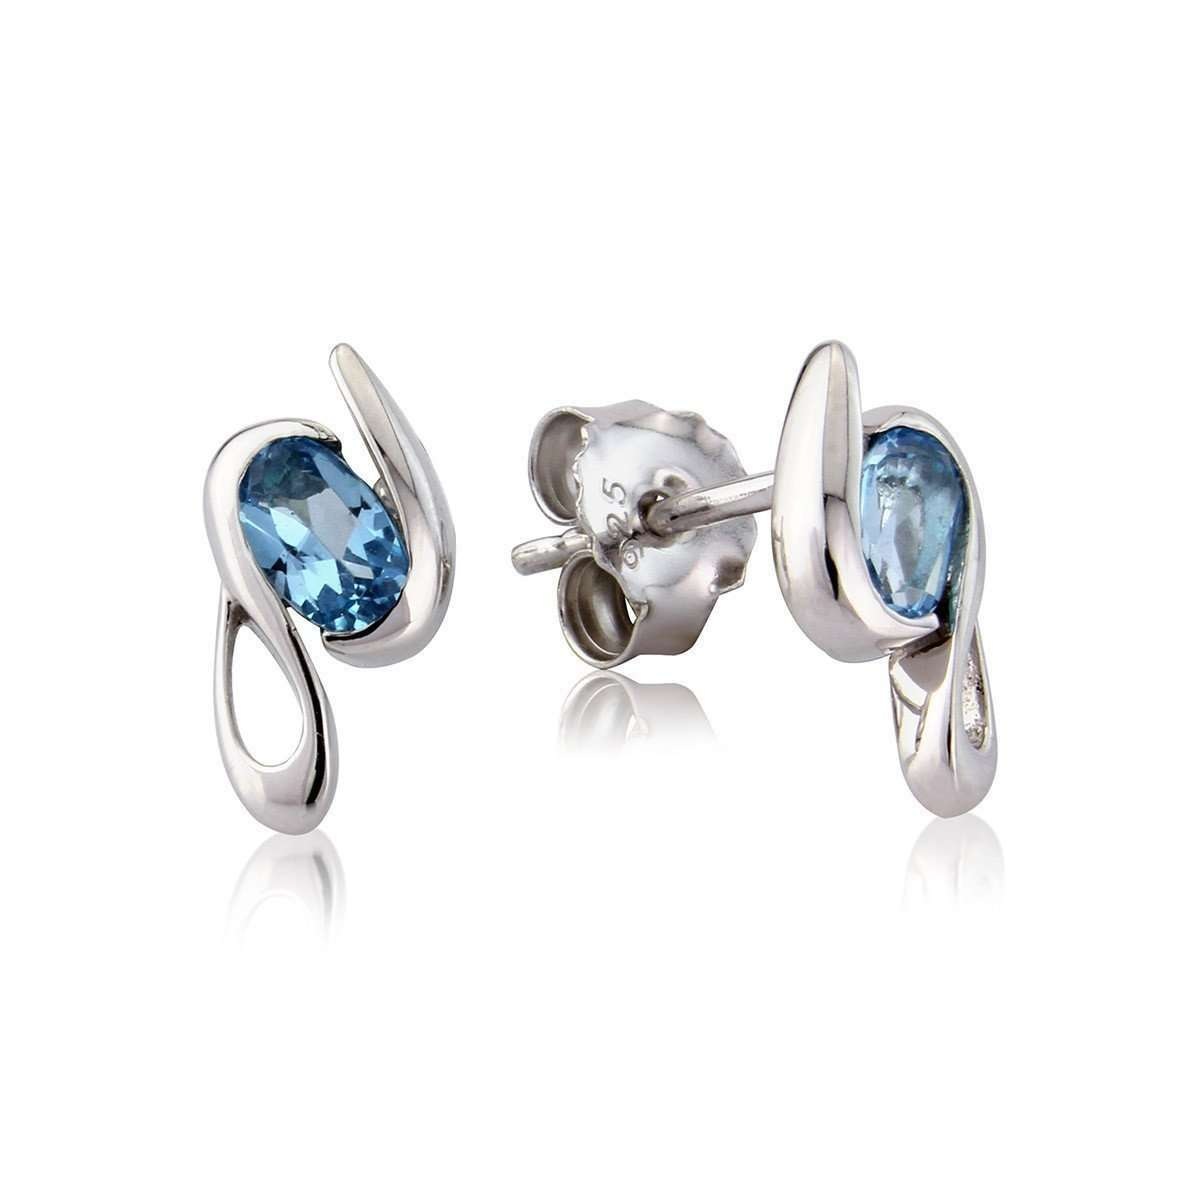 Melody Blue Topaz Earrings-So Jewellery-JewelStreet US